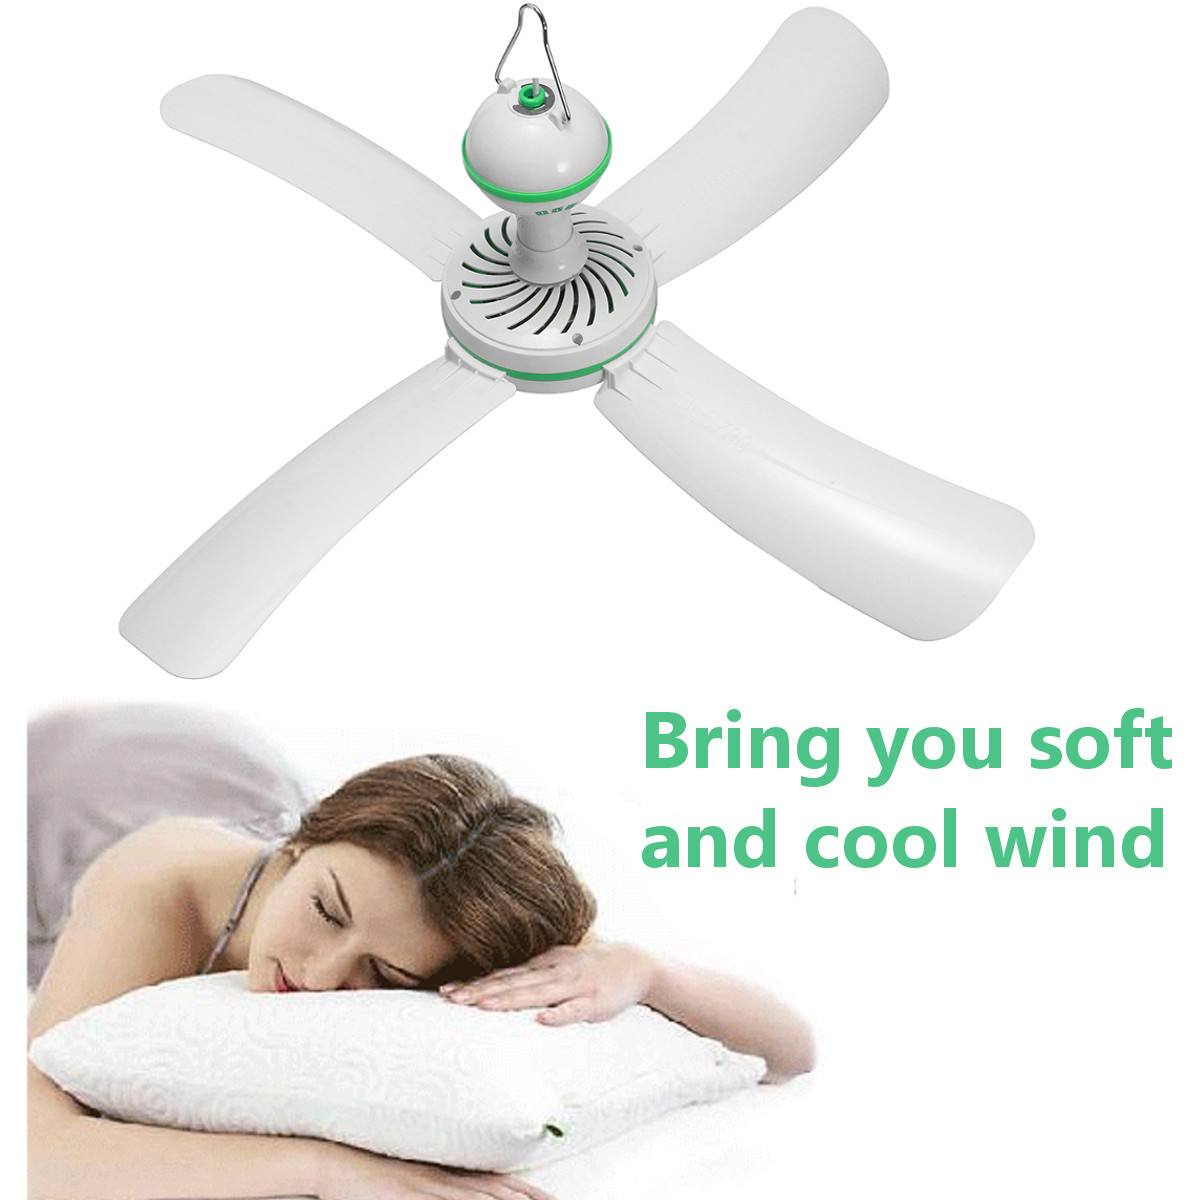 220V Super Silent Ceiling Fans Cool Mosquito Net Electric Fan Large Wind Nets Hanging Fan Mini Portable Soft Wind Household